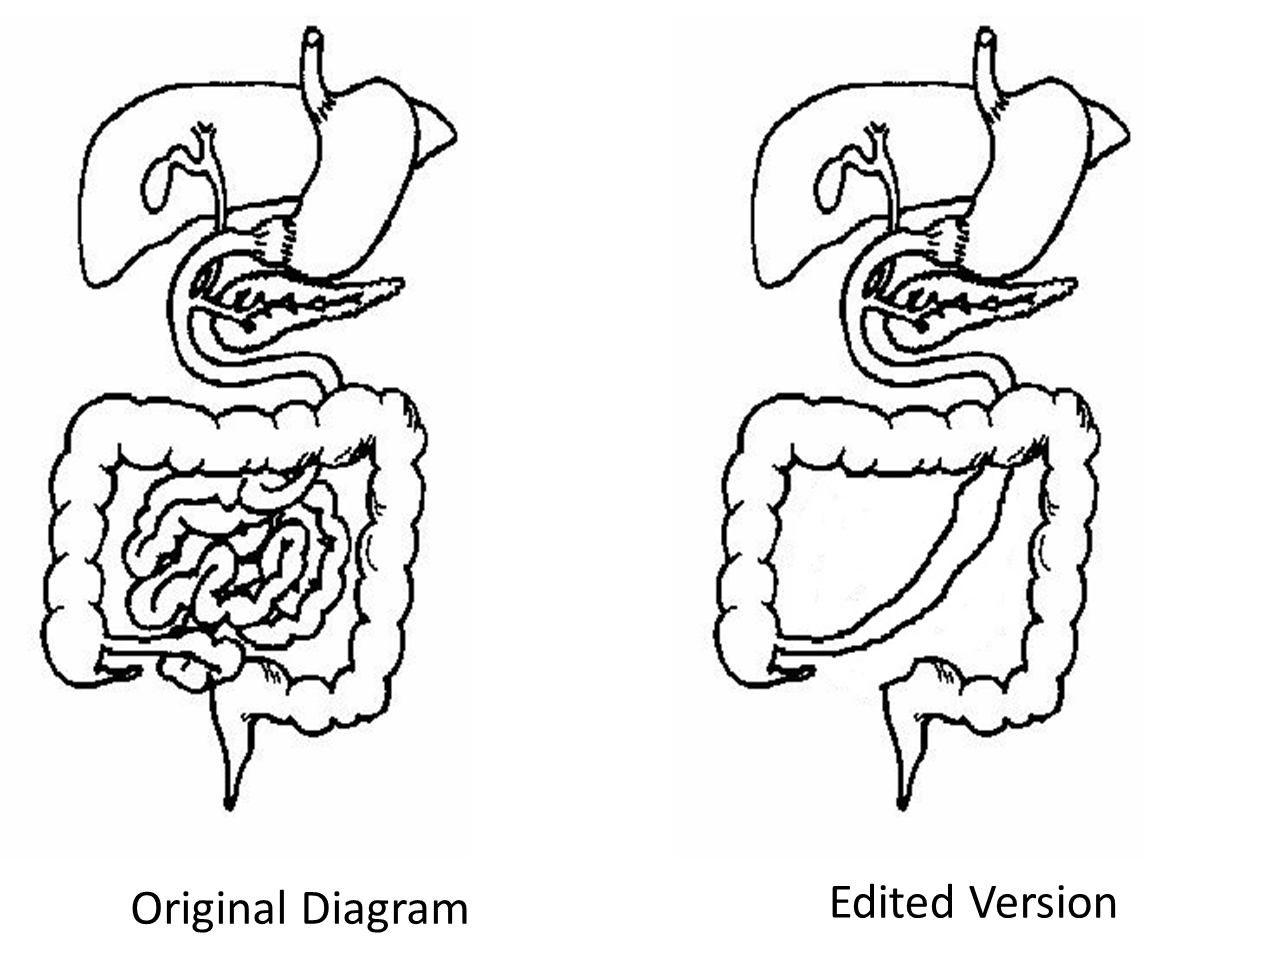 Digestive system coloring pages